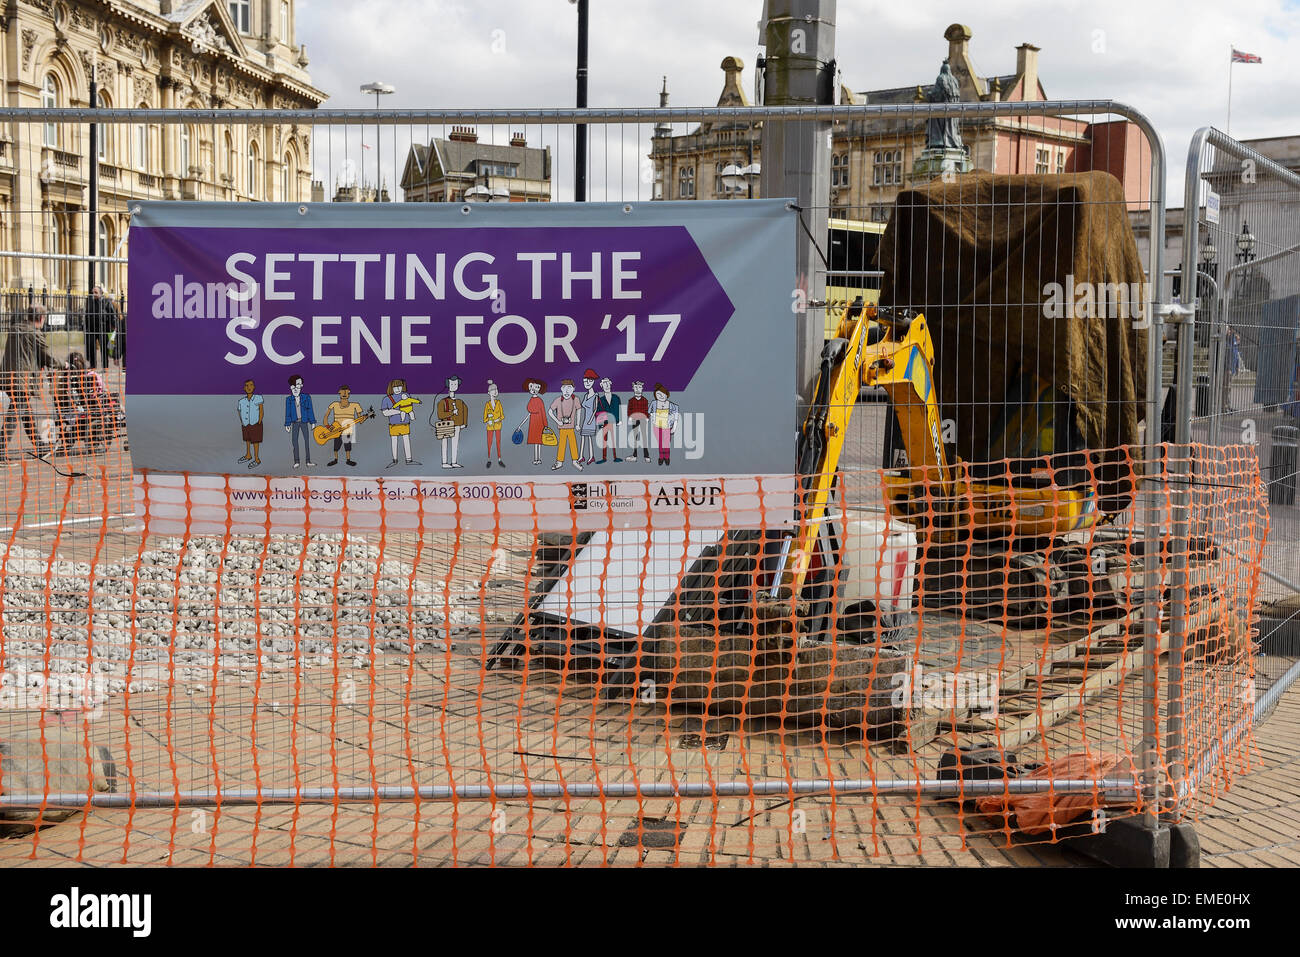 Municipal works in Hull city centre in preparation for UK City of Culture 2017 - Stock Image